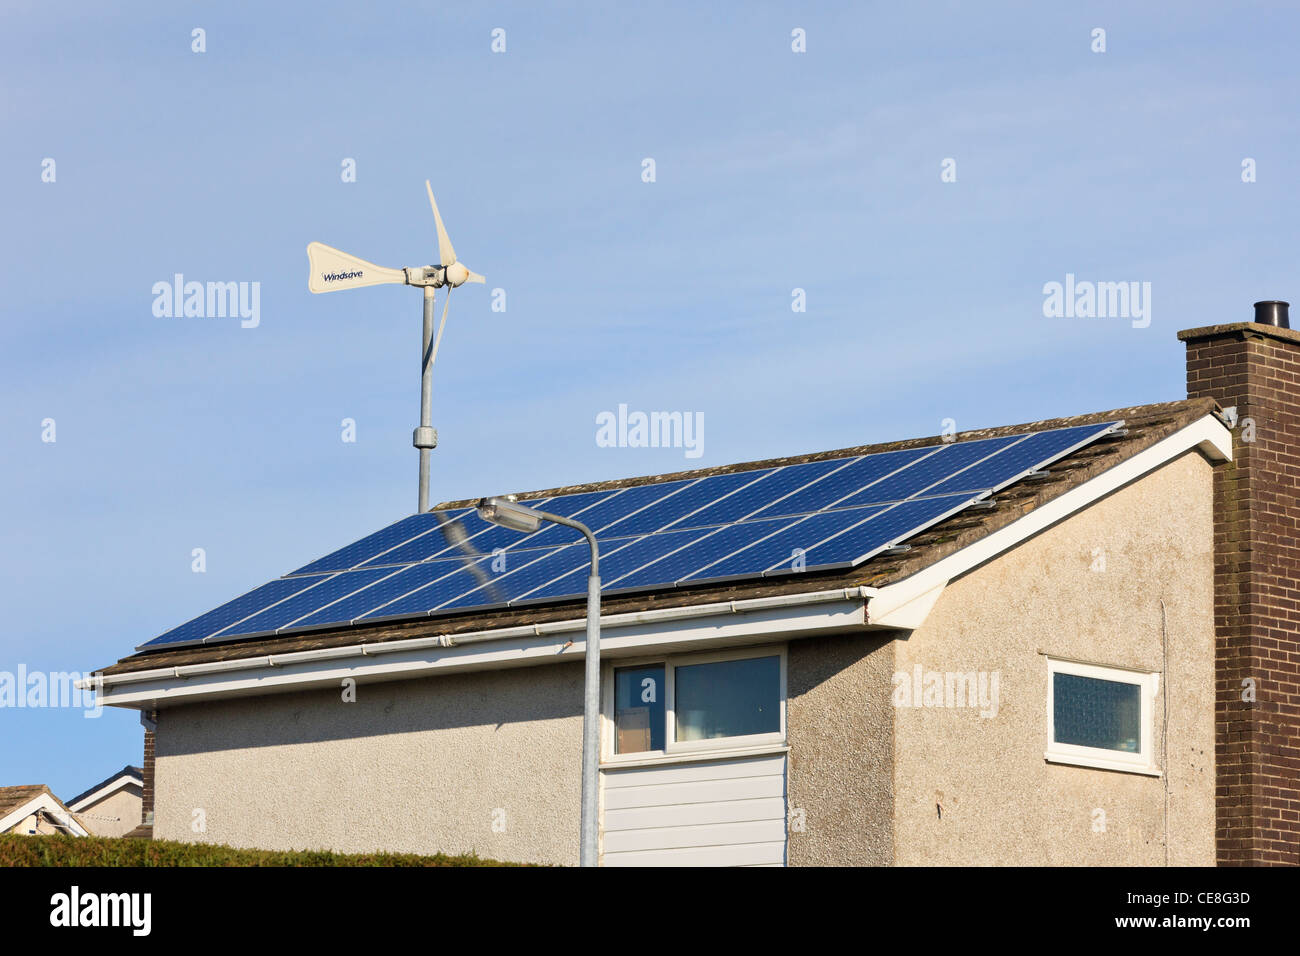 Windsave micro wind turbine and solar panels on a domestic eco home house roof for alternative energy. UK - Stock Image